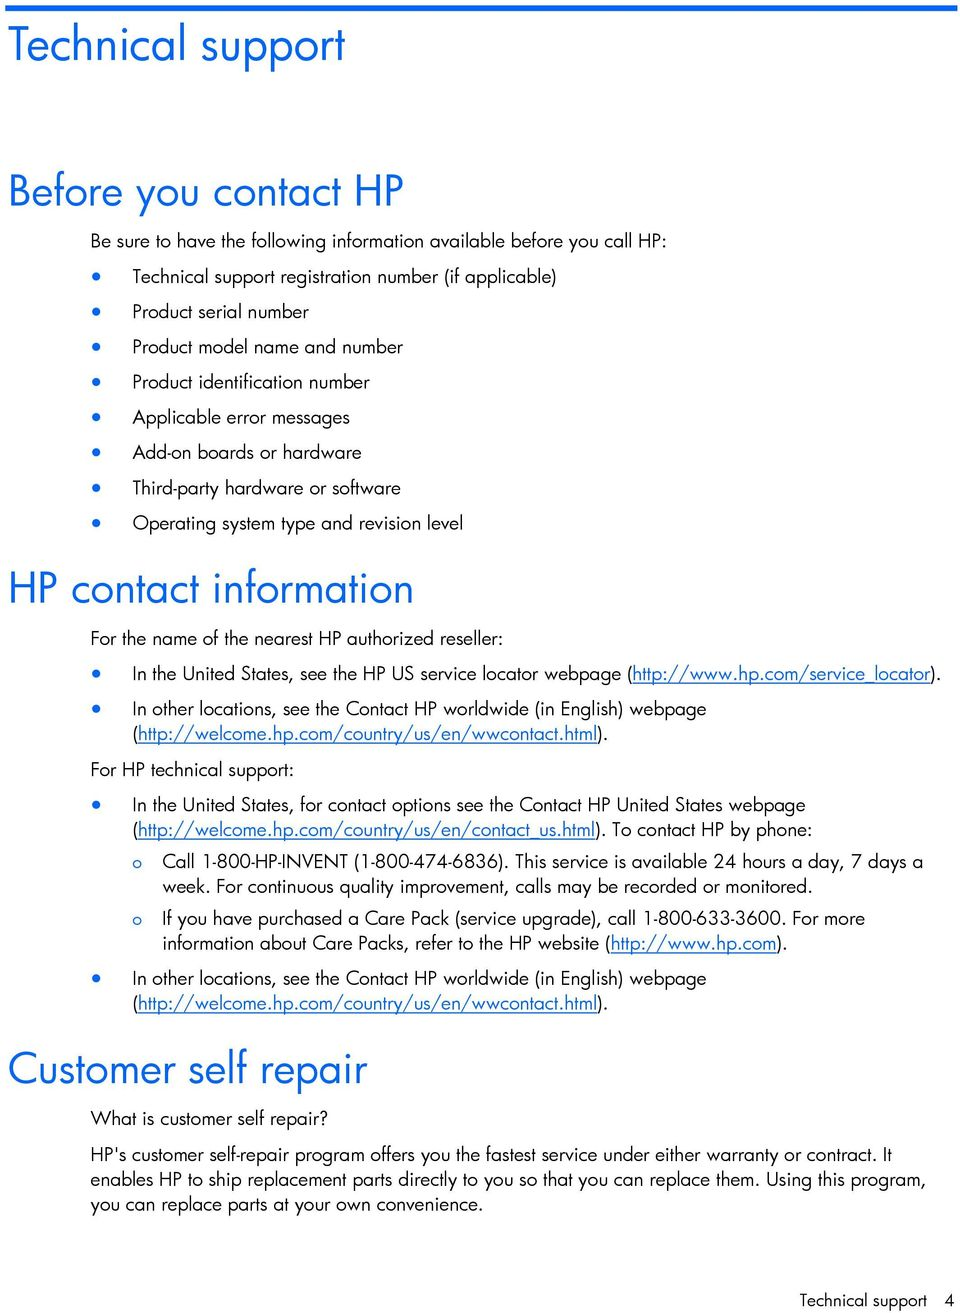 information For the name of the nearest HP authorized reseller: In the United States, see the HP US service locator webpage (http://www.hp.com/service_locator).